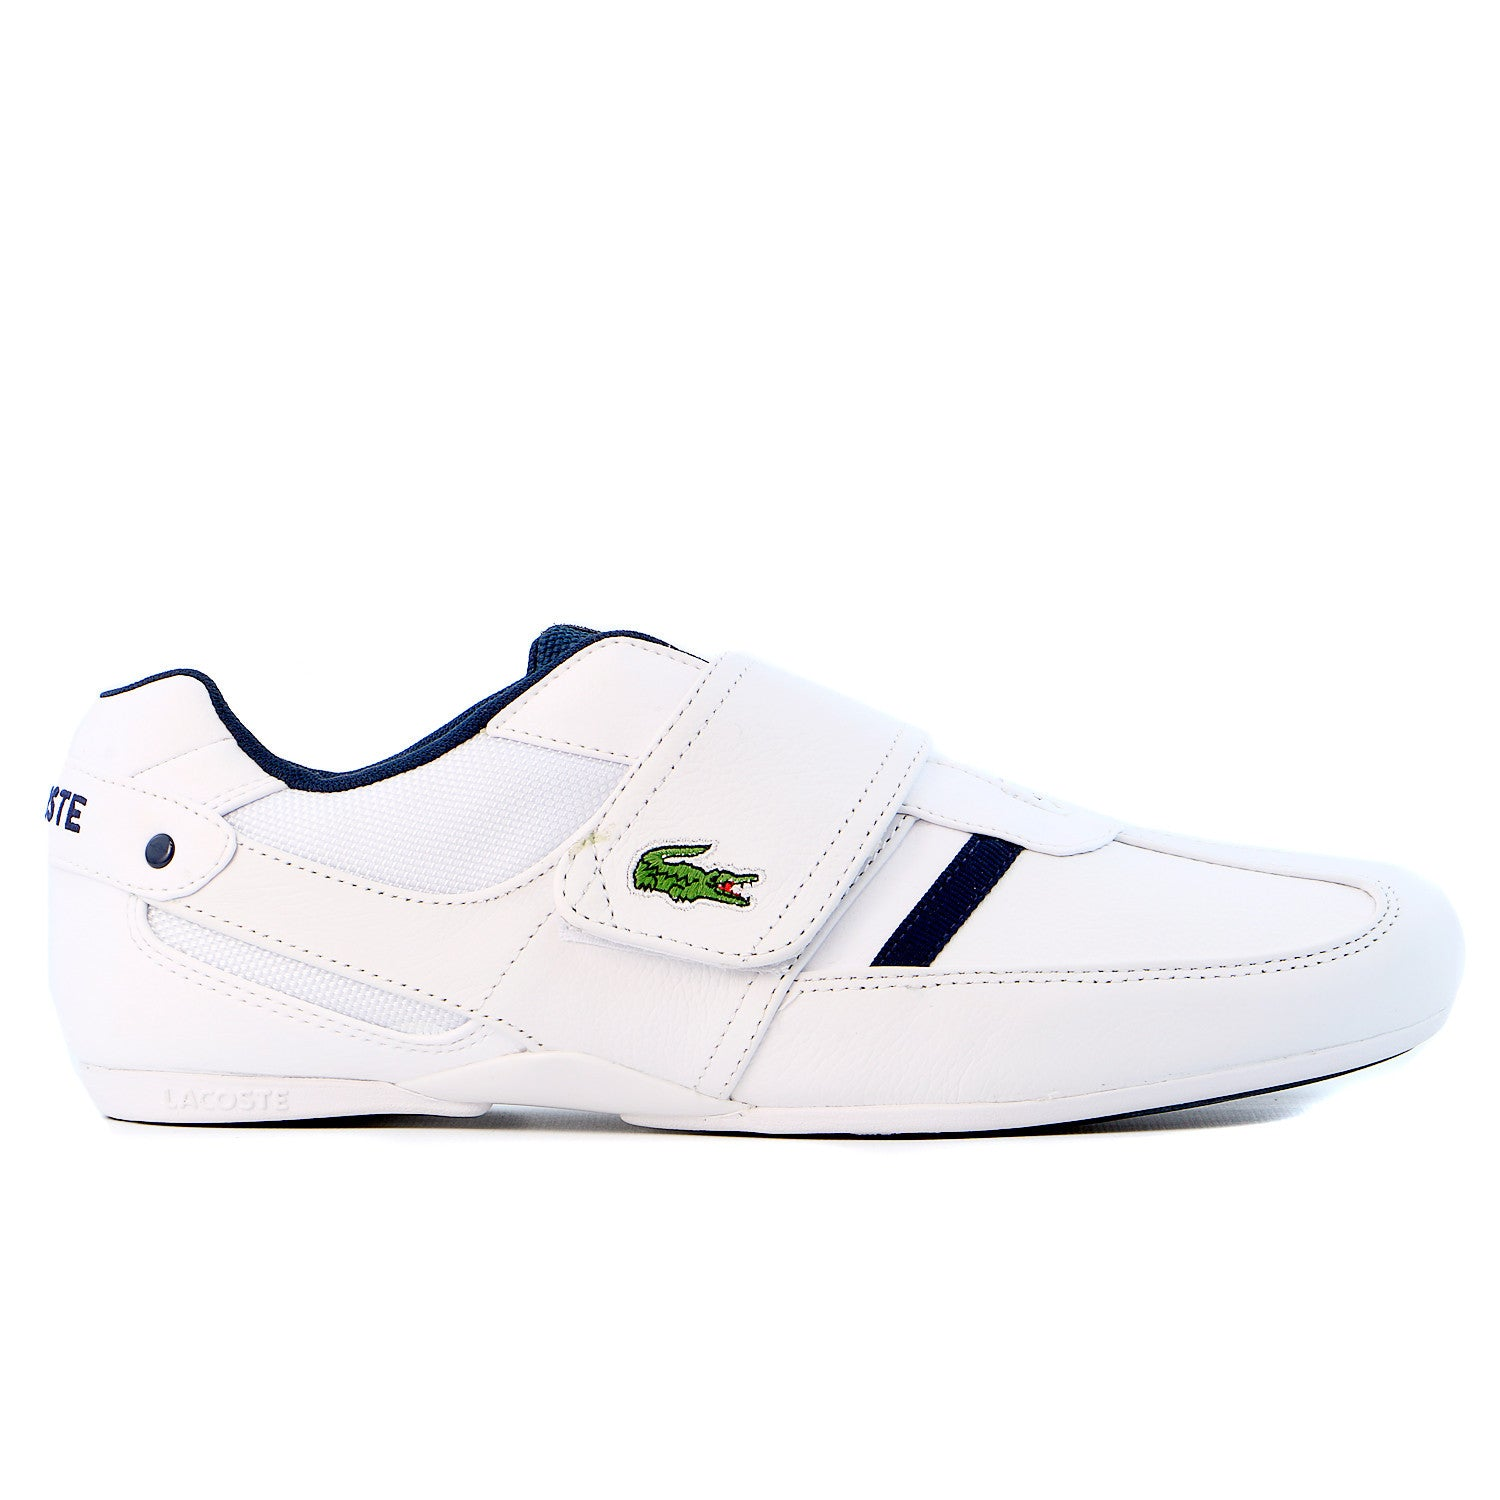 Lacoste Protected CR - White/Dark Blue - Mens